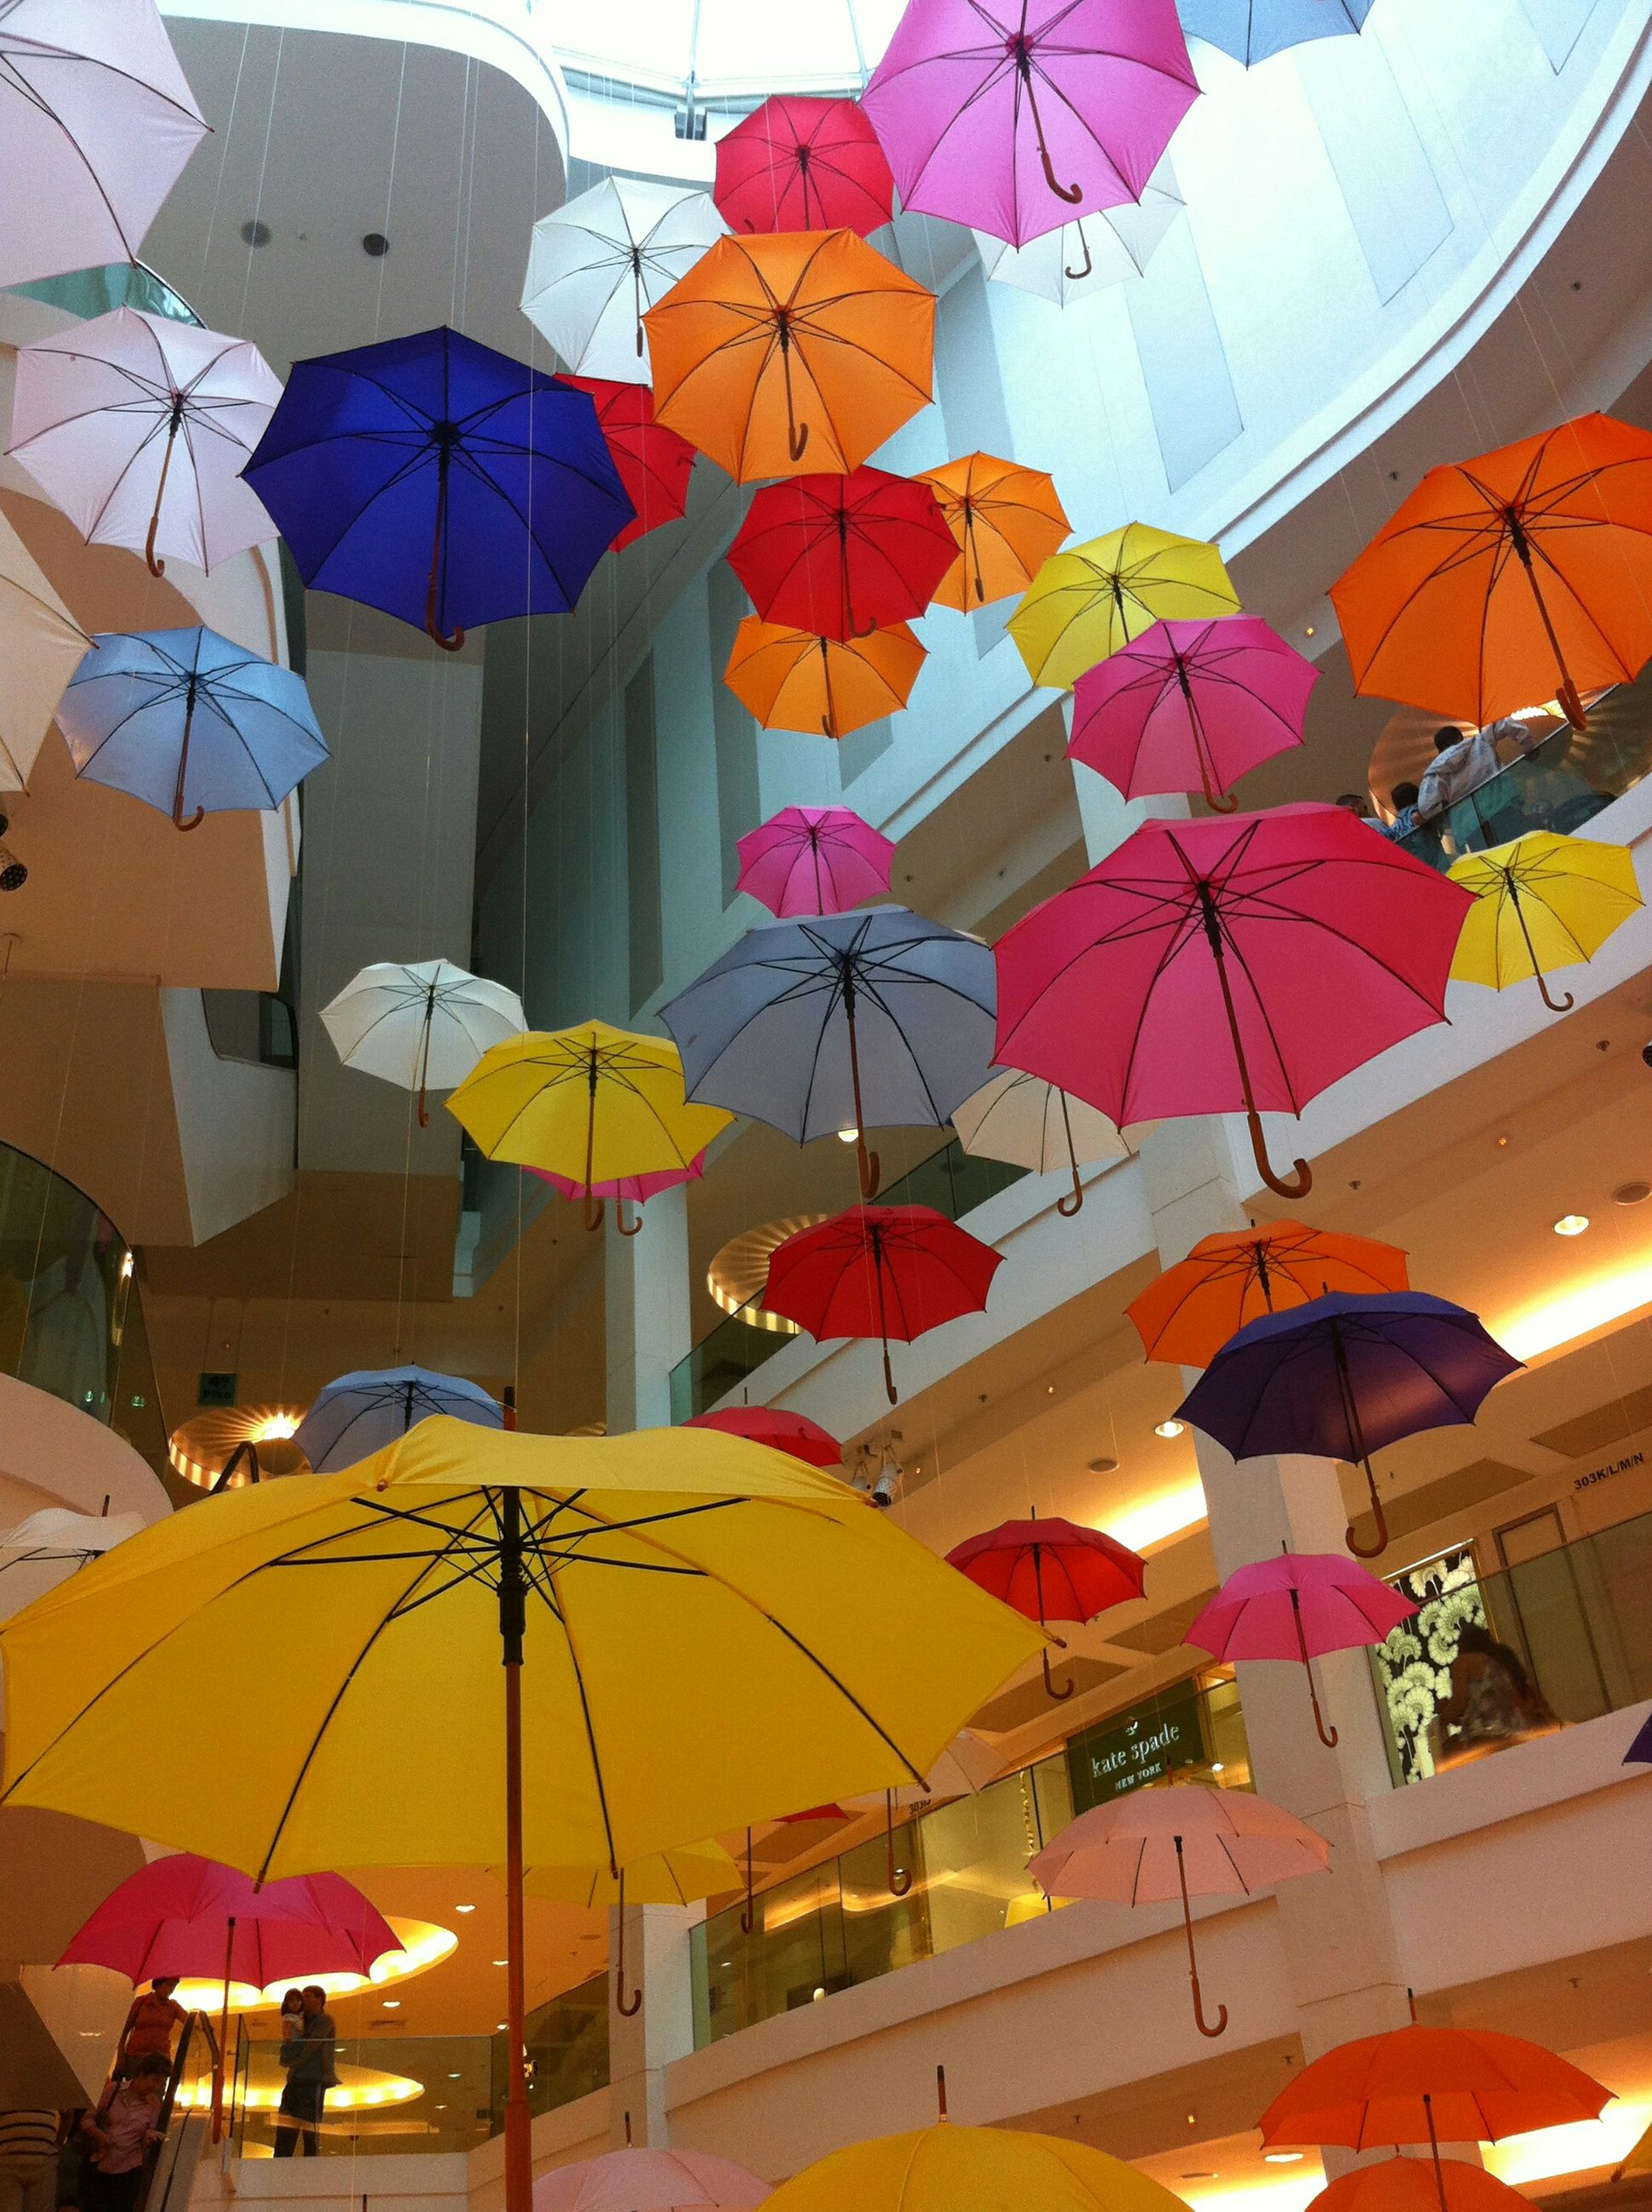 architecture, built structure, multi colored, low angle view, building exterior, decoration, hanging, umbrella, celebration, lighting equipment, indoors, ceiling, cultures, lantern, colorful, day, tradition, balloon, design